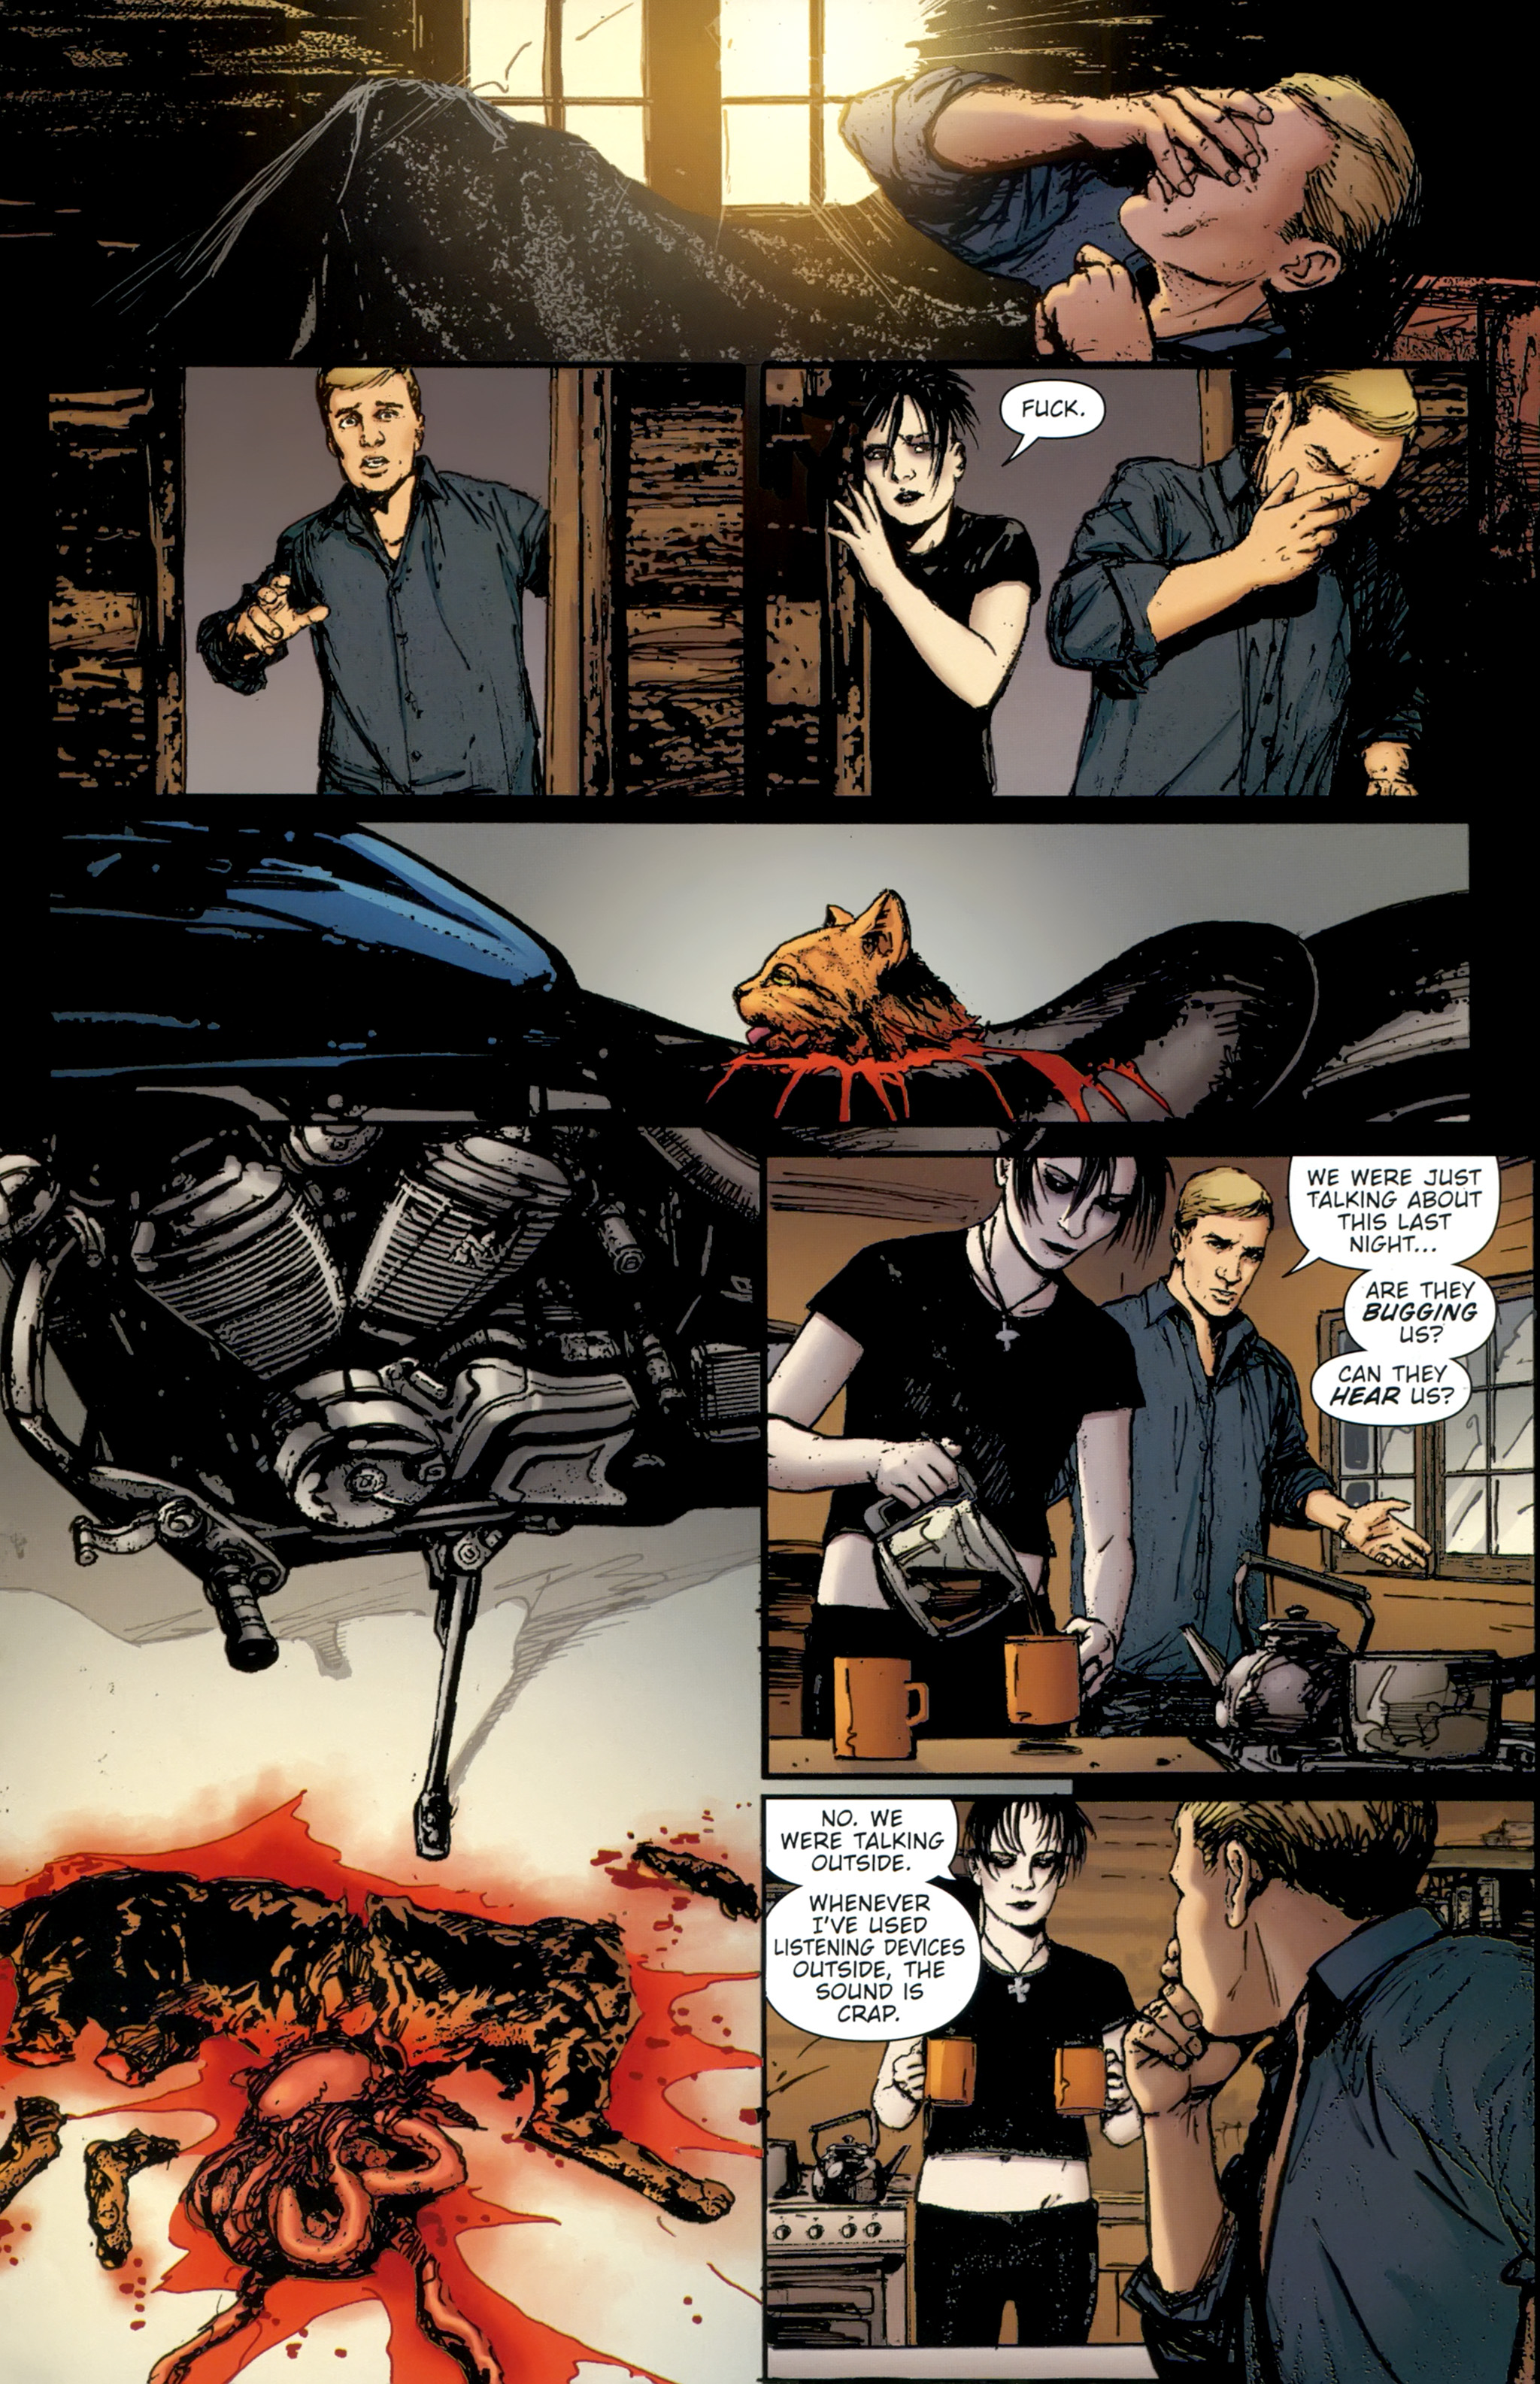 Read online The Girl With the Dragon Tattoo comic -  Issue # TPB 2 - 69